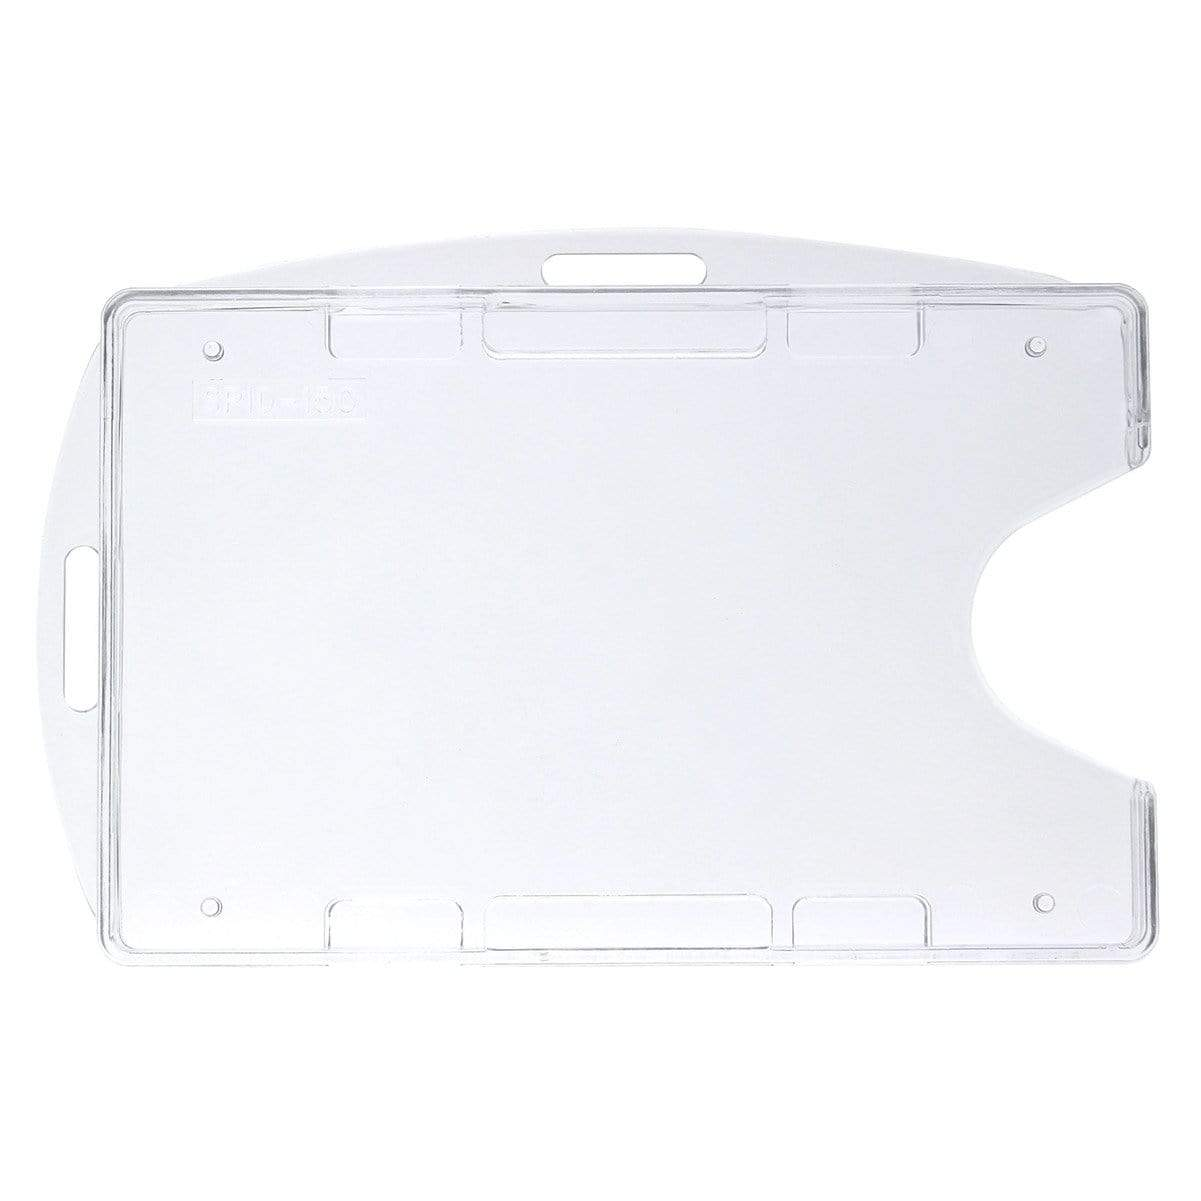 Crystal Clear Rigid Open-Faced 2 Card Holder - Optional Vertical or Horizontal (P/N SPID-150)